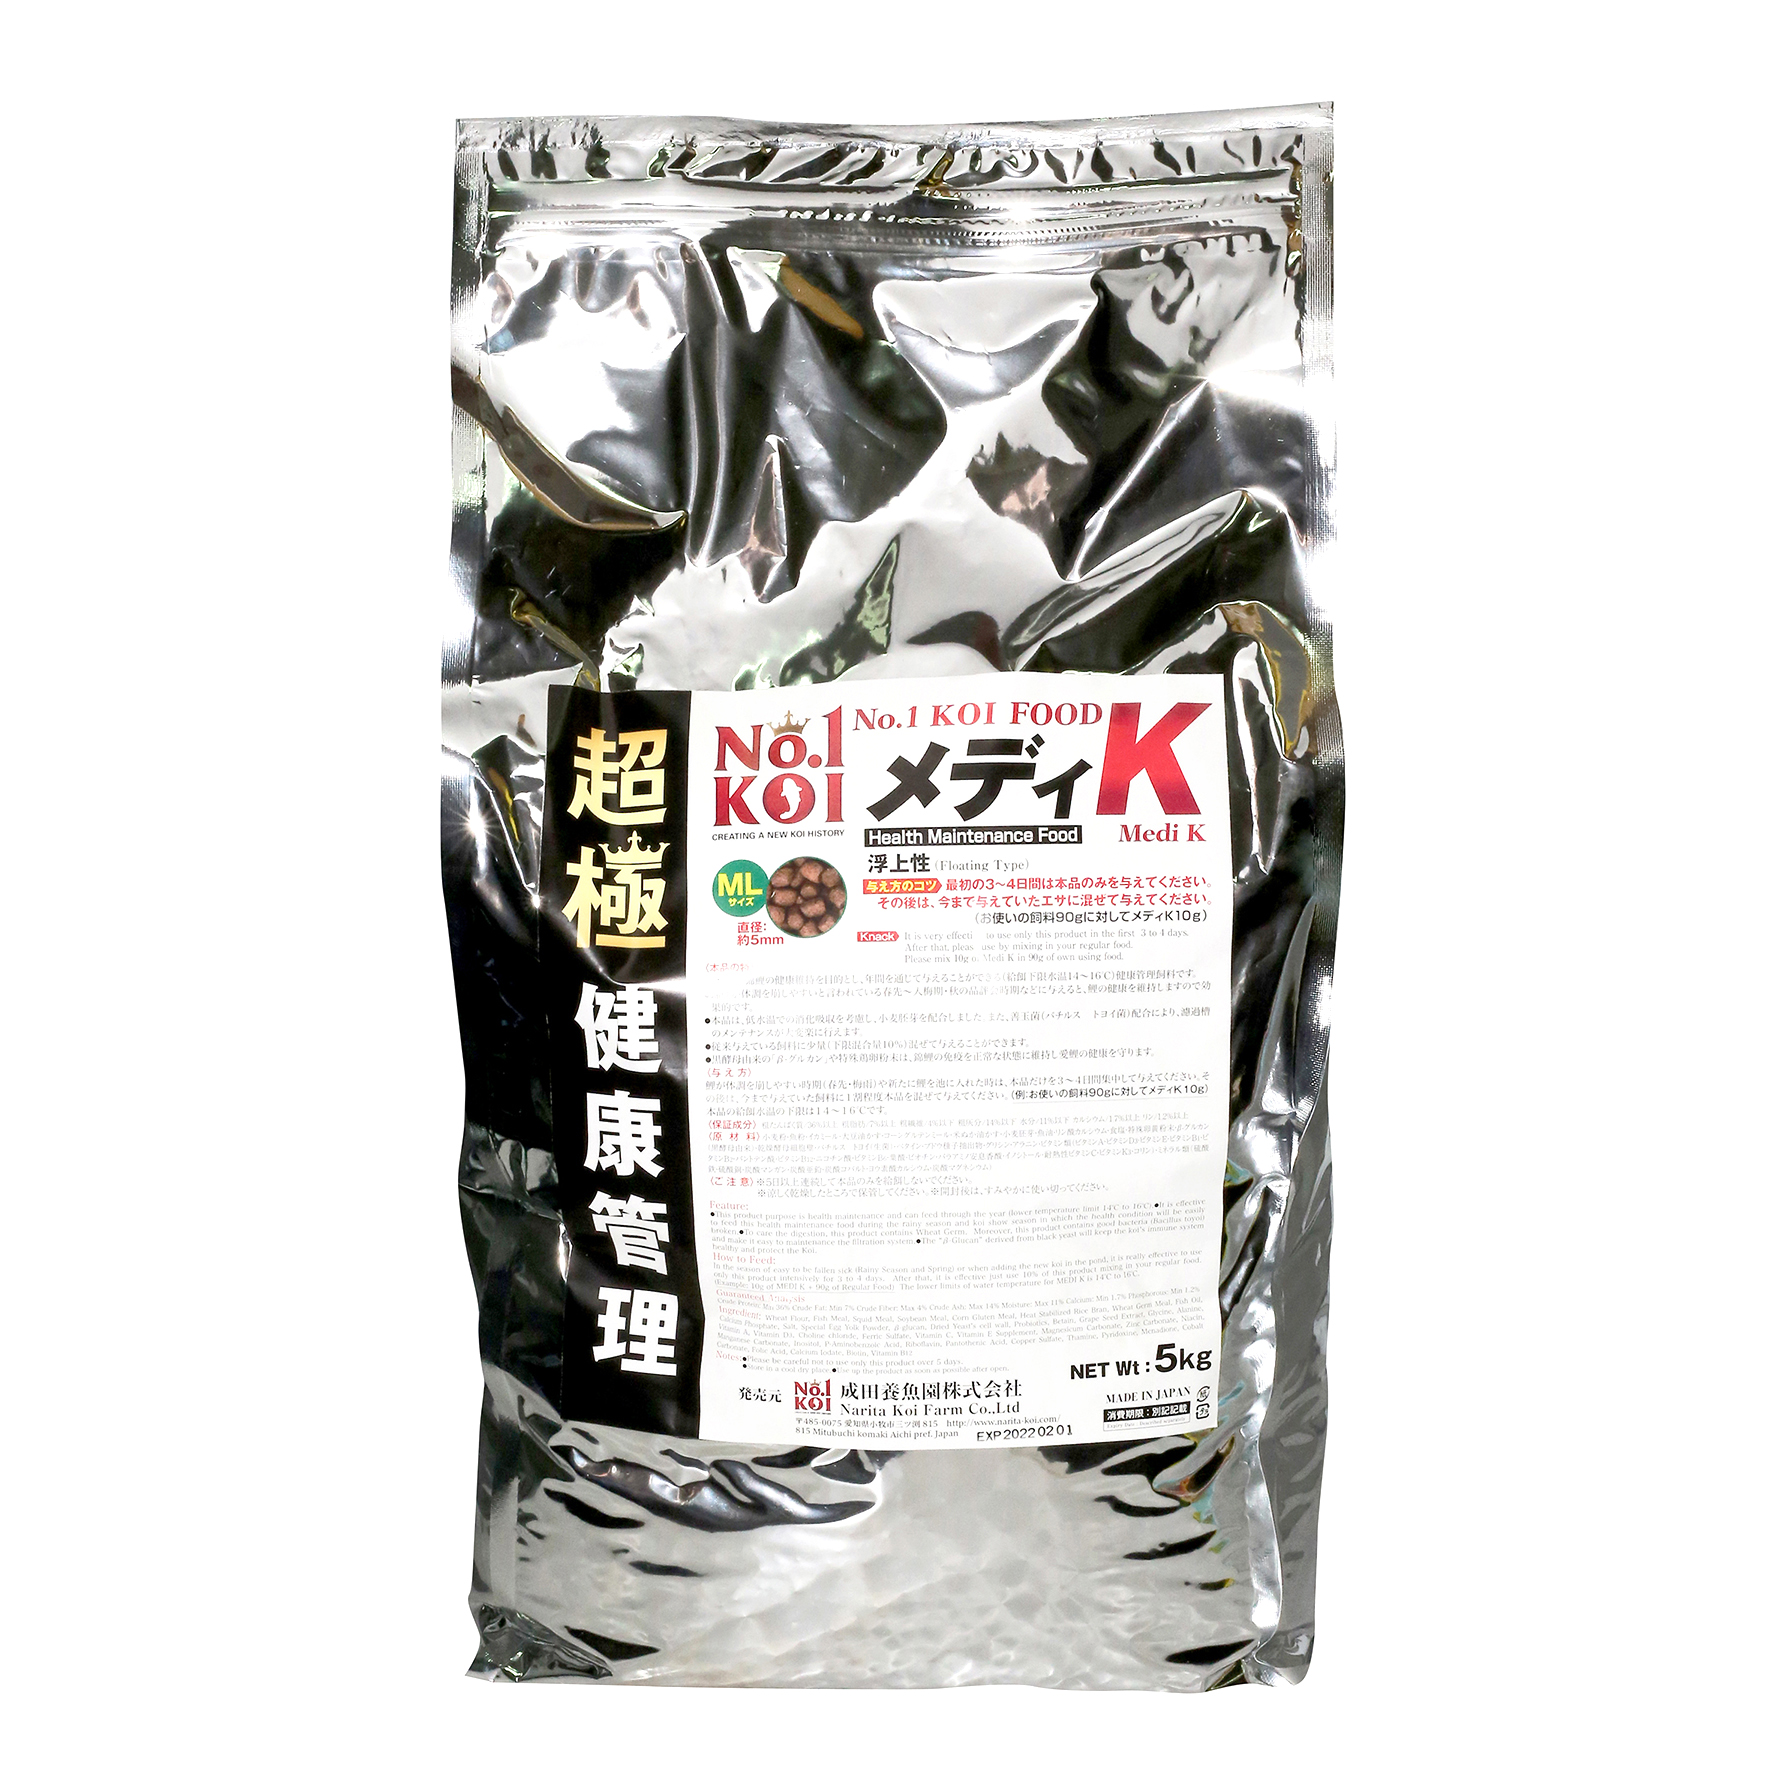 NO.1 KOI FOOD MEDI-K  (ML) 5 Kg.